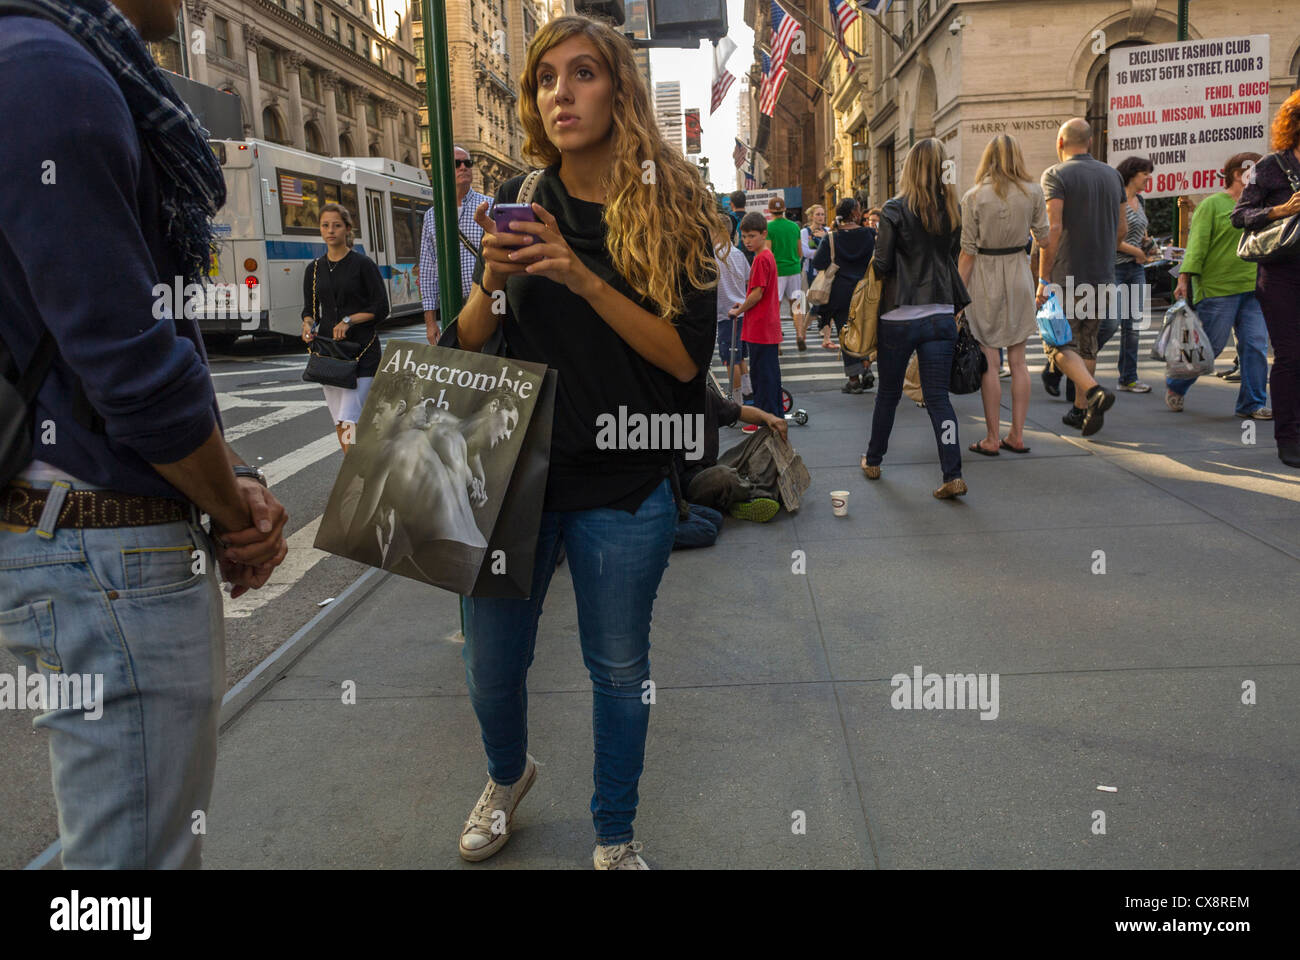 New York, NY, USA, People Shopping, Street Scenes, Luxury Shops on Fifth Avenue, Manhattan , - Stock Image